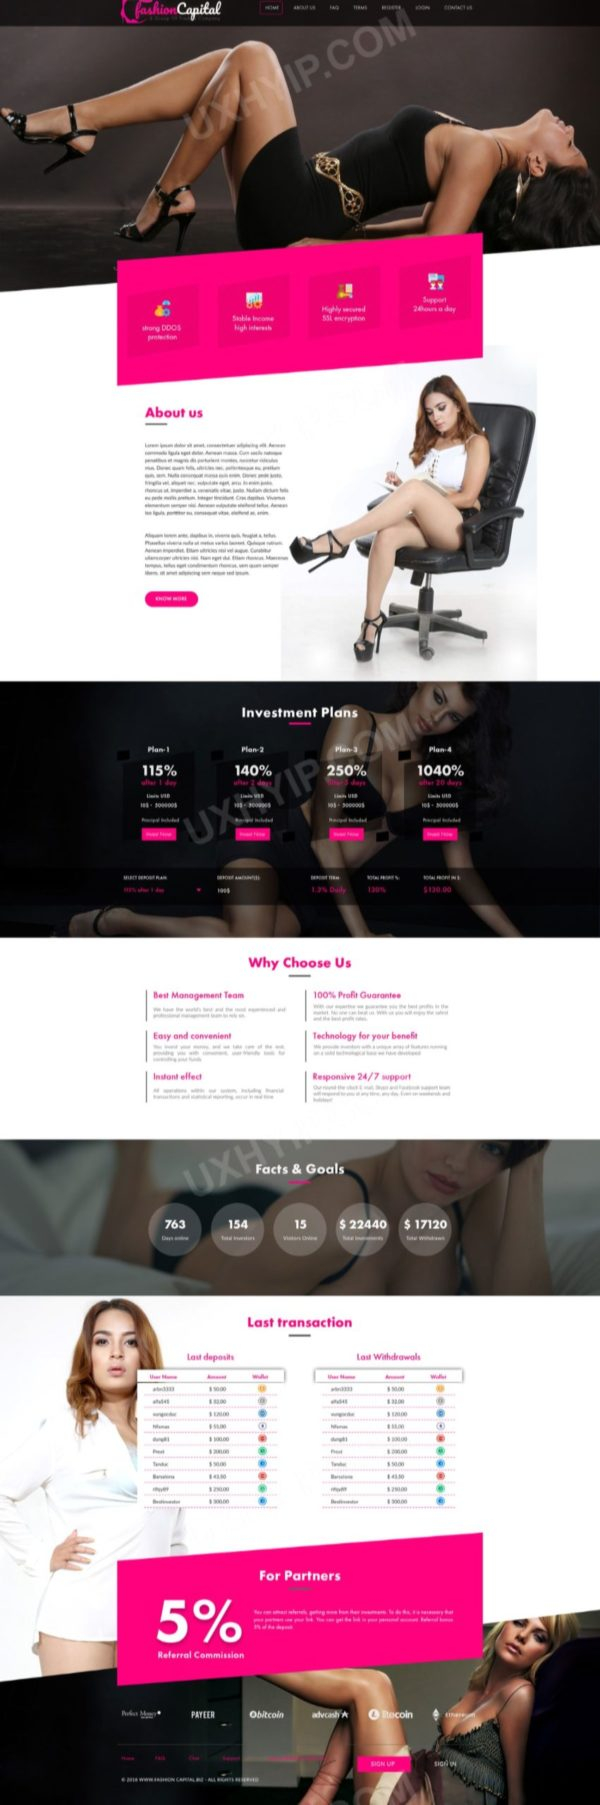 HYIP Template - Investment Business Template FashionCapital ID 112